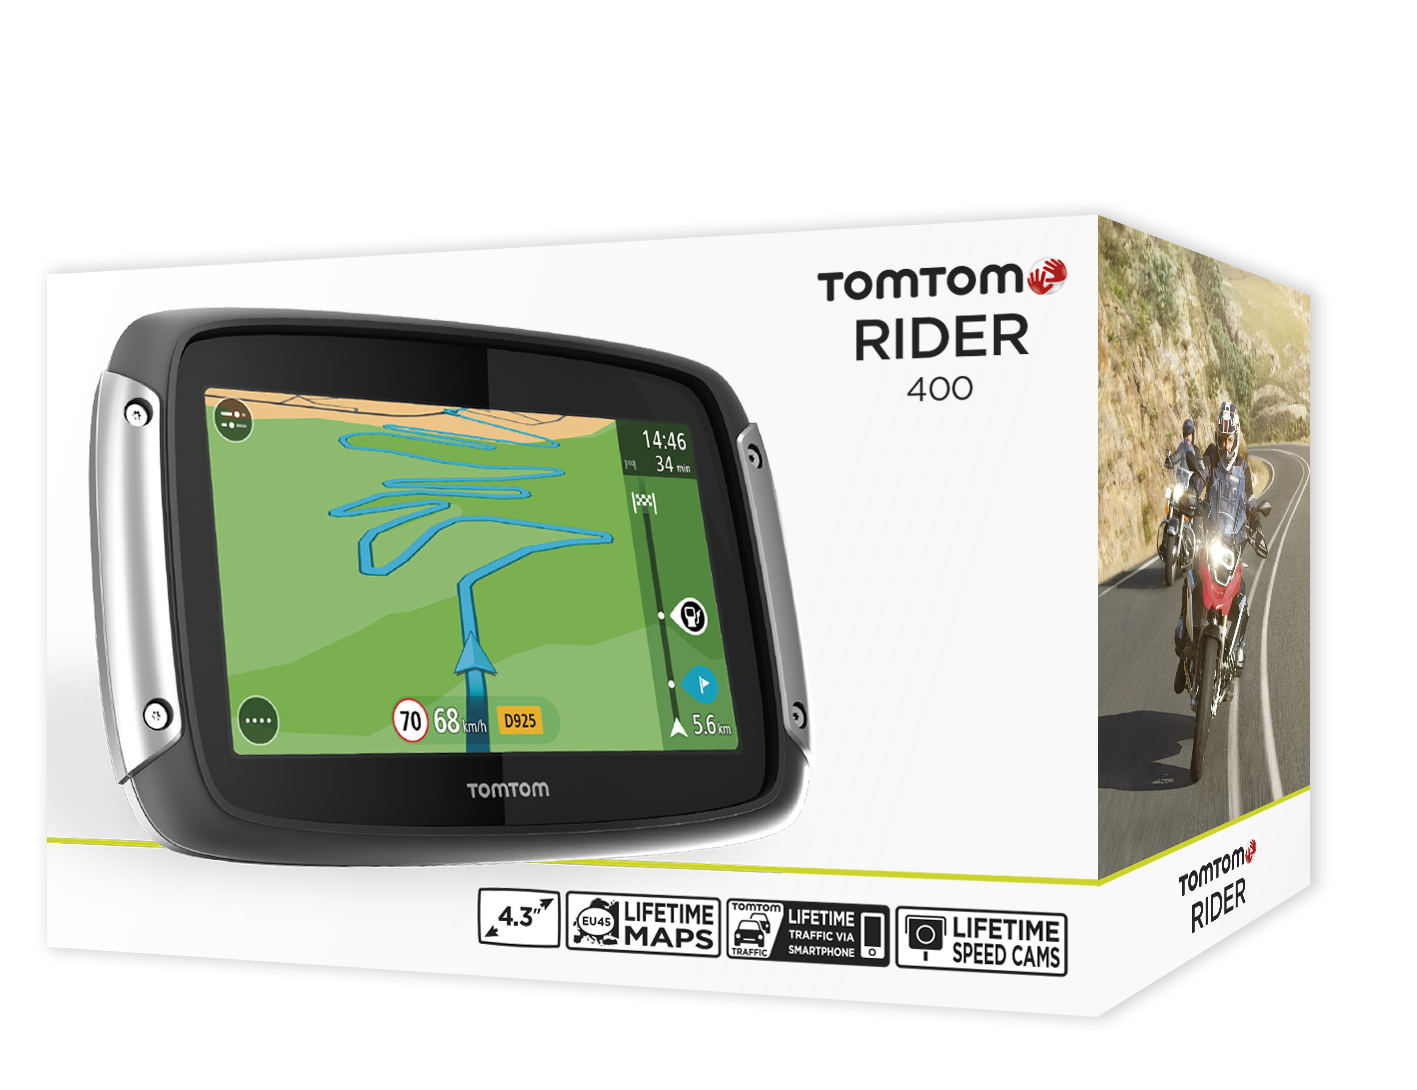 tomtom rider 400 2016 v6 motorcycle scooter gps satnav lifetime uk europe maps ebay. Black Bedroom Furniture Sets. Home Design Ideas